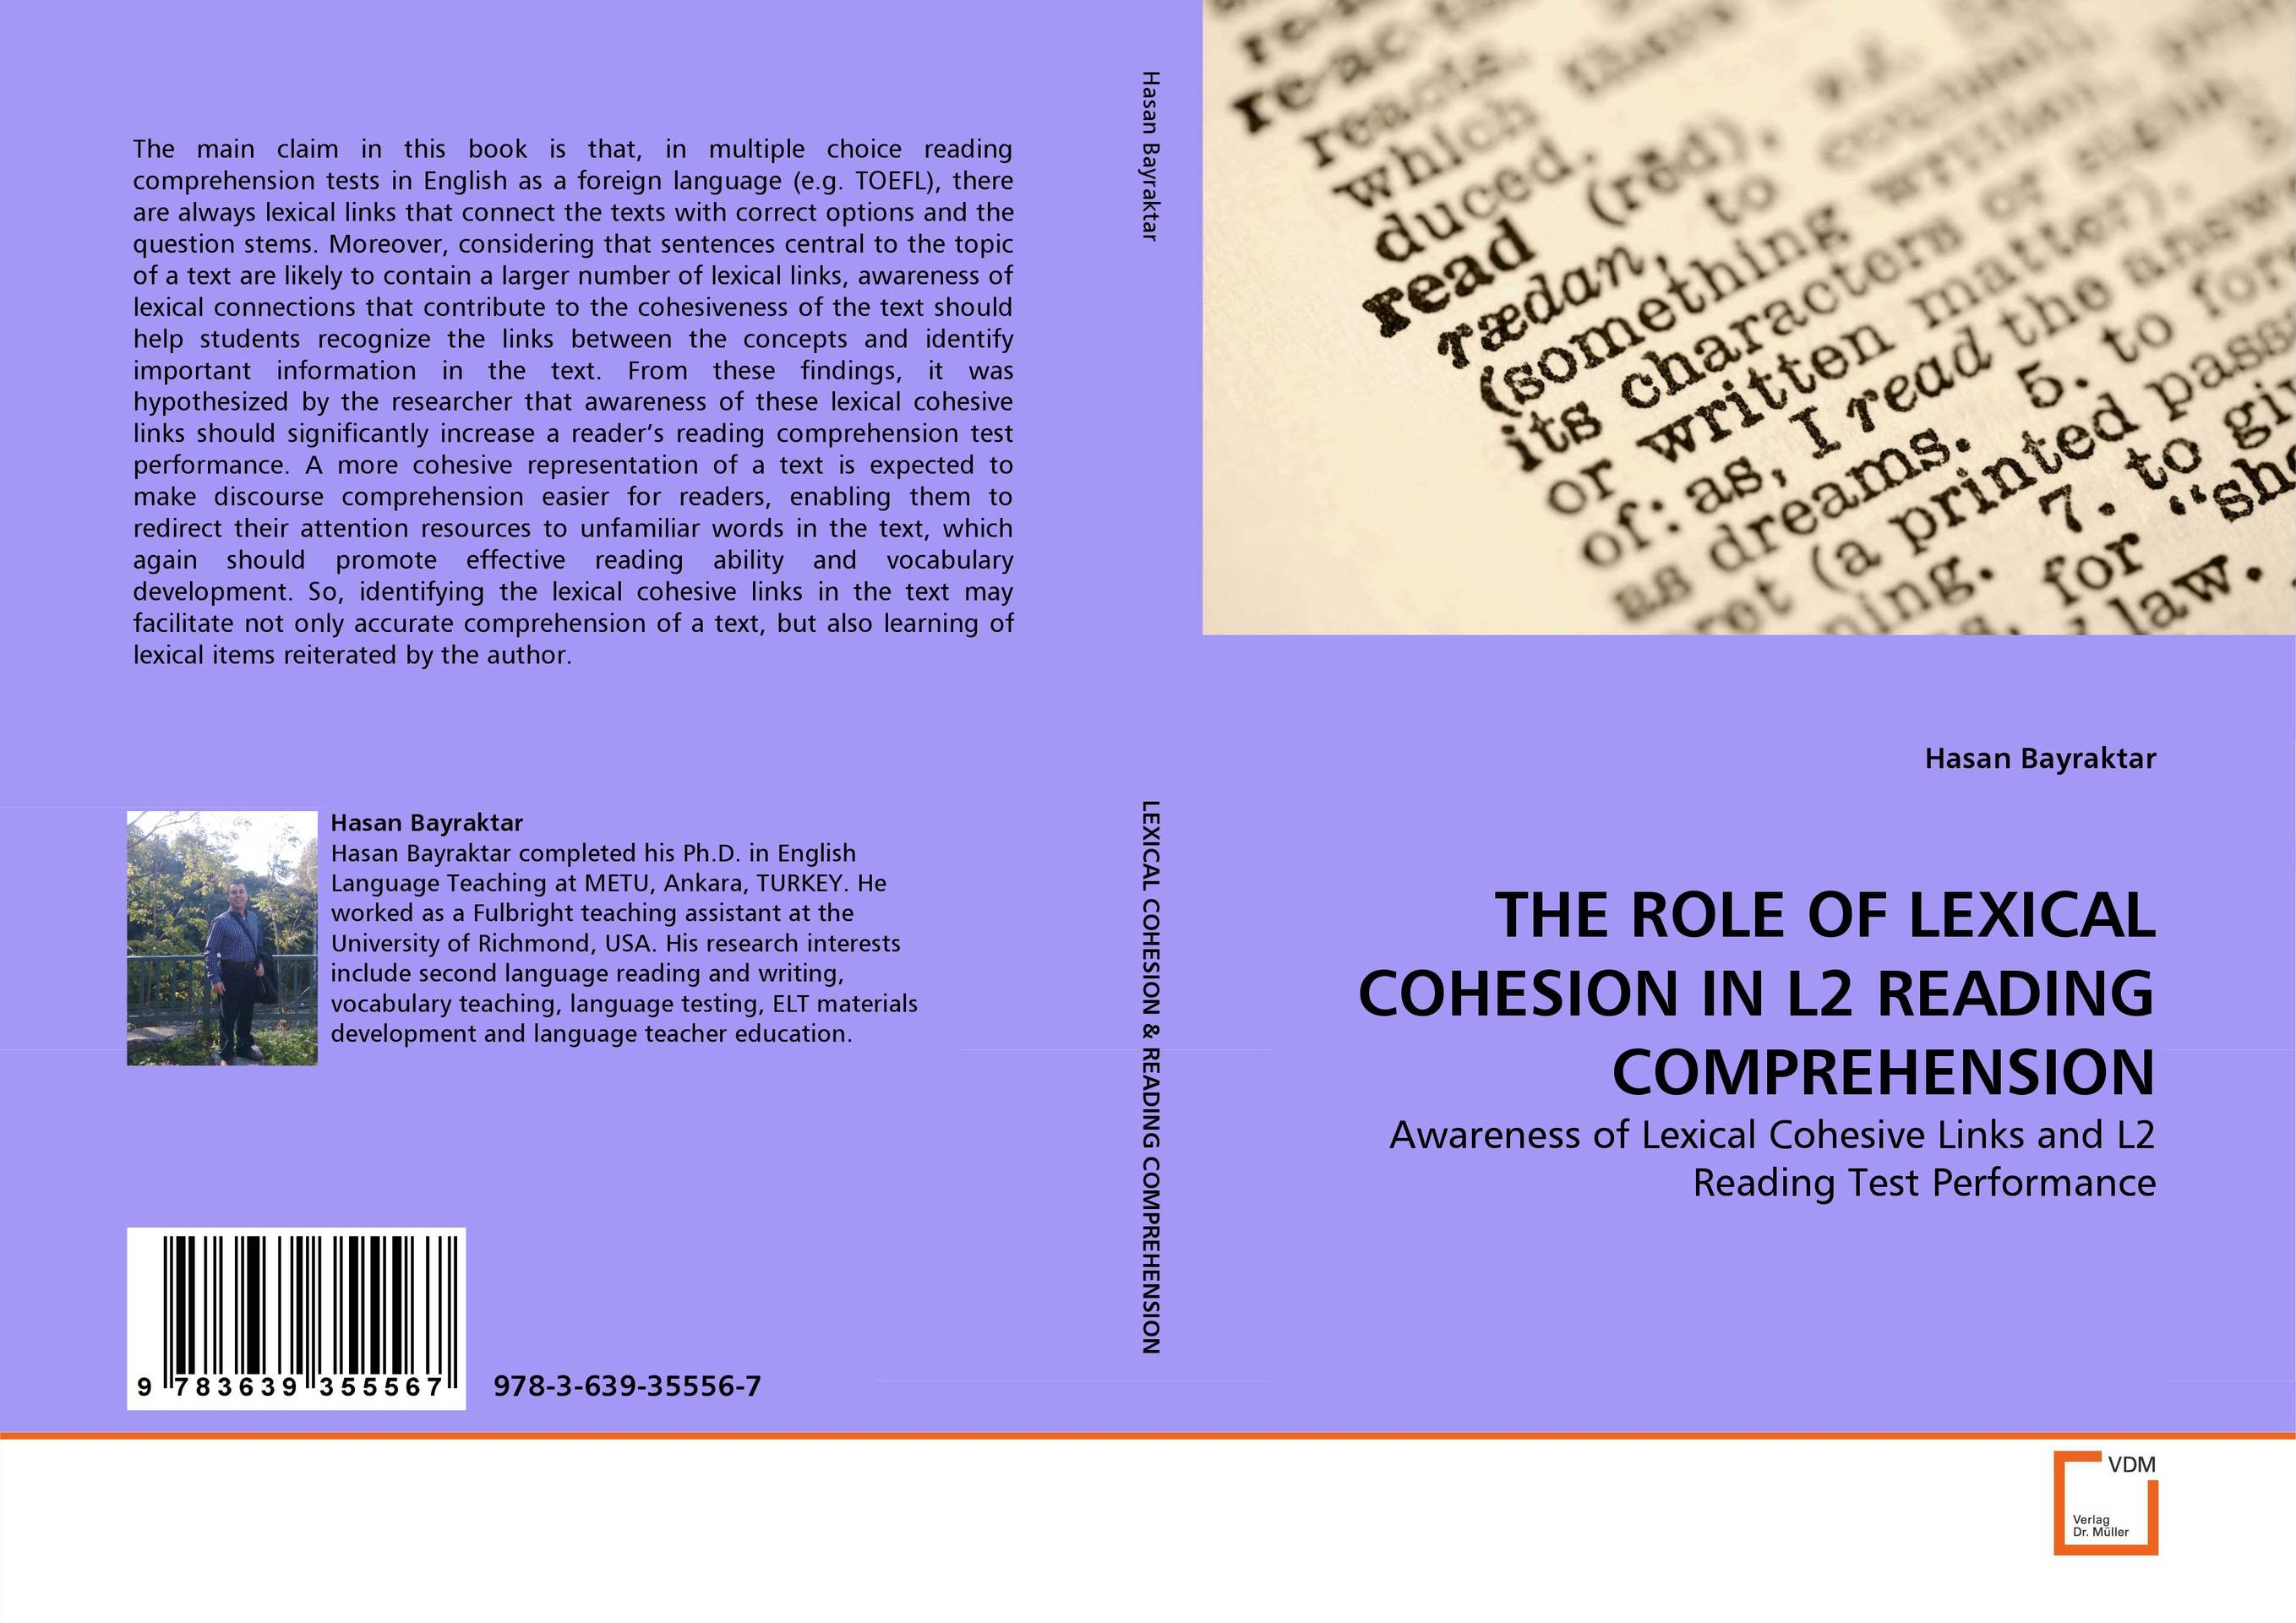 THE ROLE OF LEXICAL COHESION IN L2 READING COMPREHENSION text in action